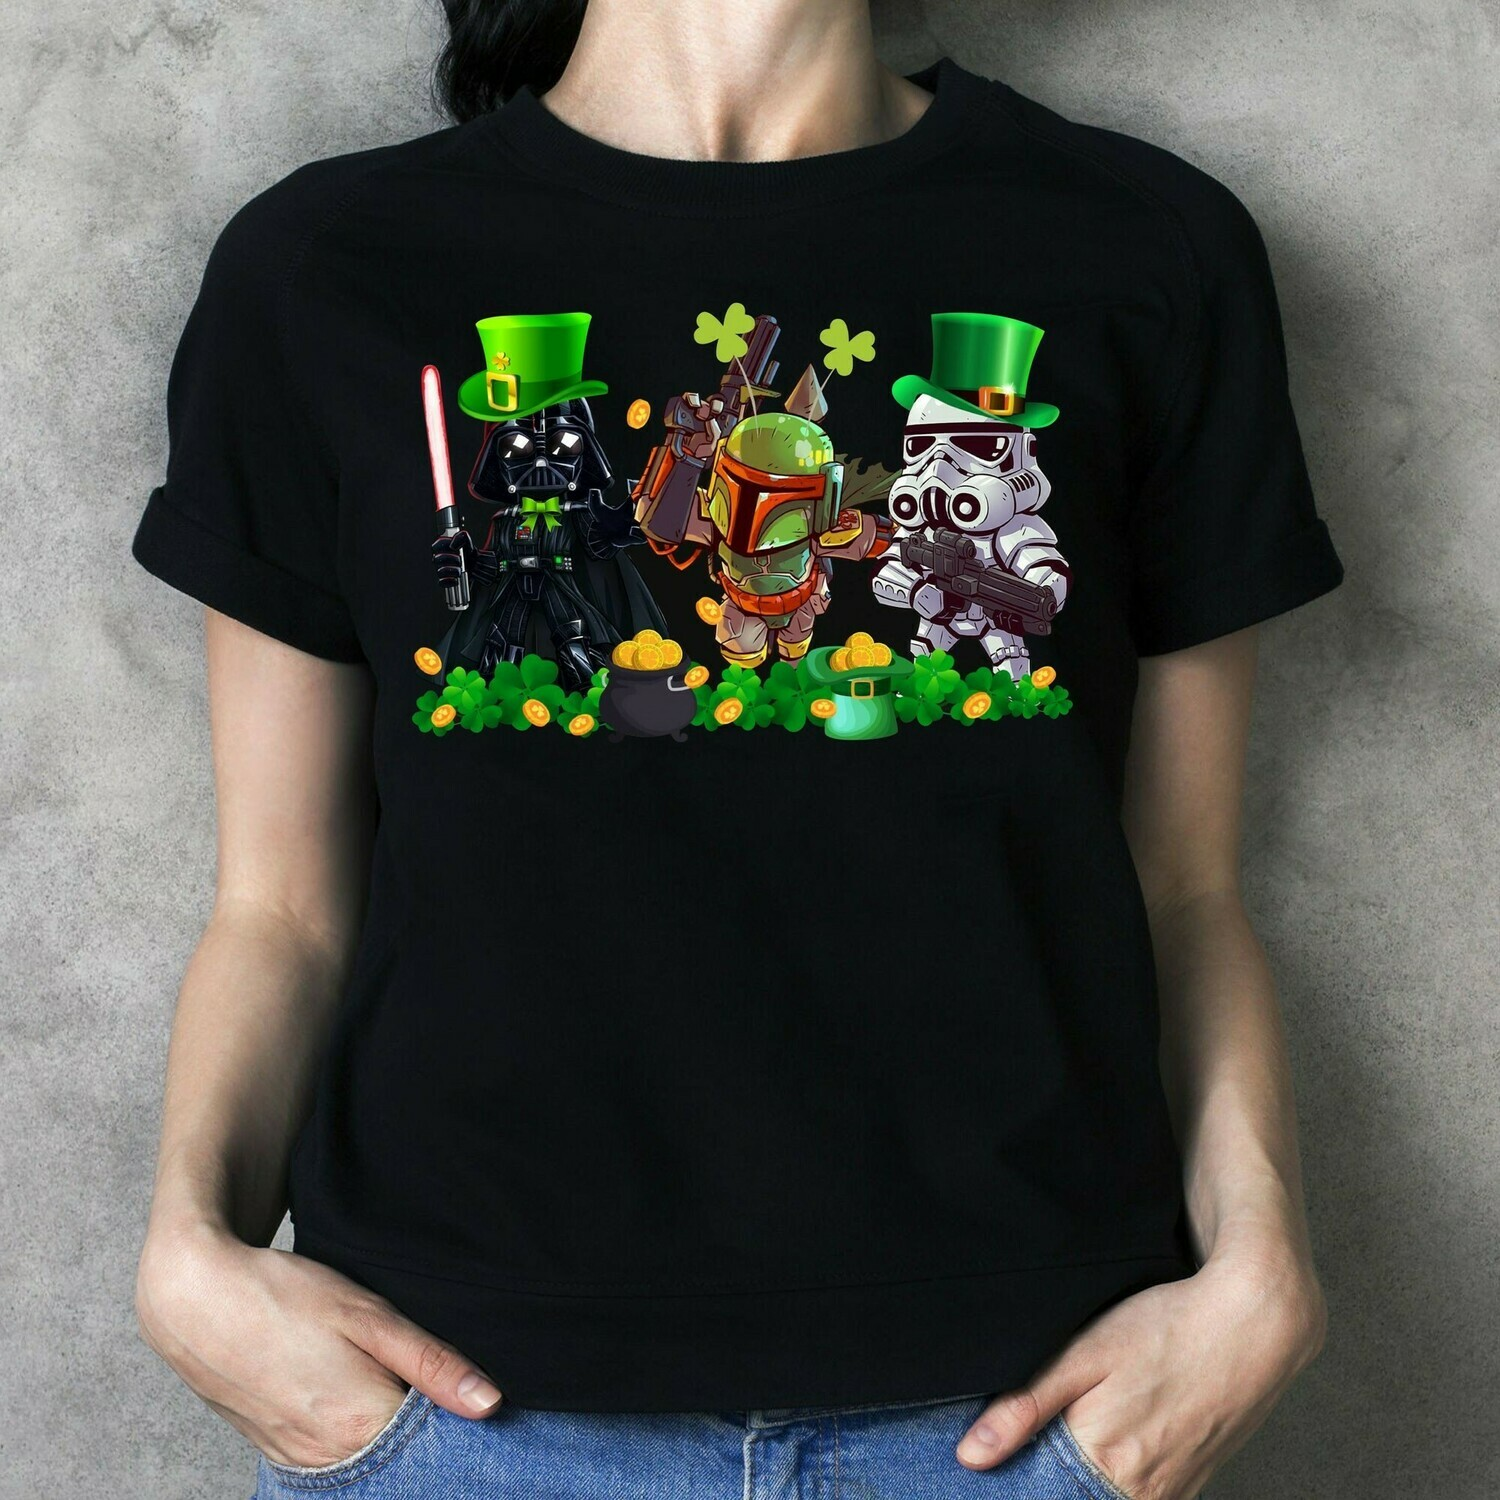 The Mandalorian with death Star Wars Chibi Jedi Squad Movie Film St. Patrick's Day,Kylo Ren Darth Maul Shamrock Four Leaf Clover  T-Shirt Hoodie Sweatshirt Sweater Tee Kids Youth Gifts Jolly Family